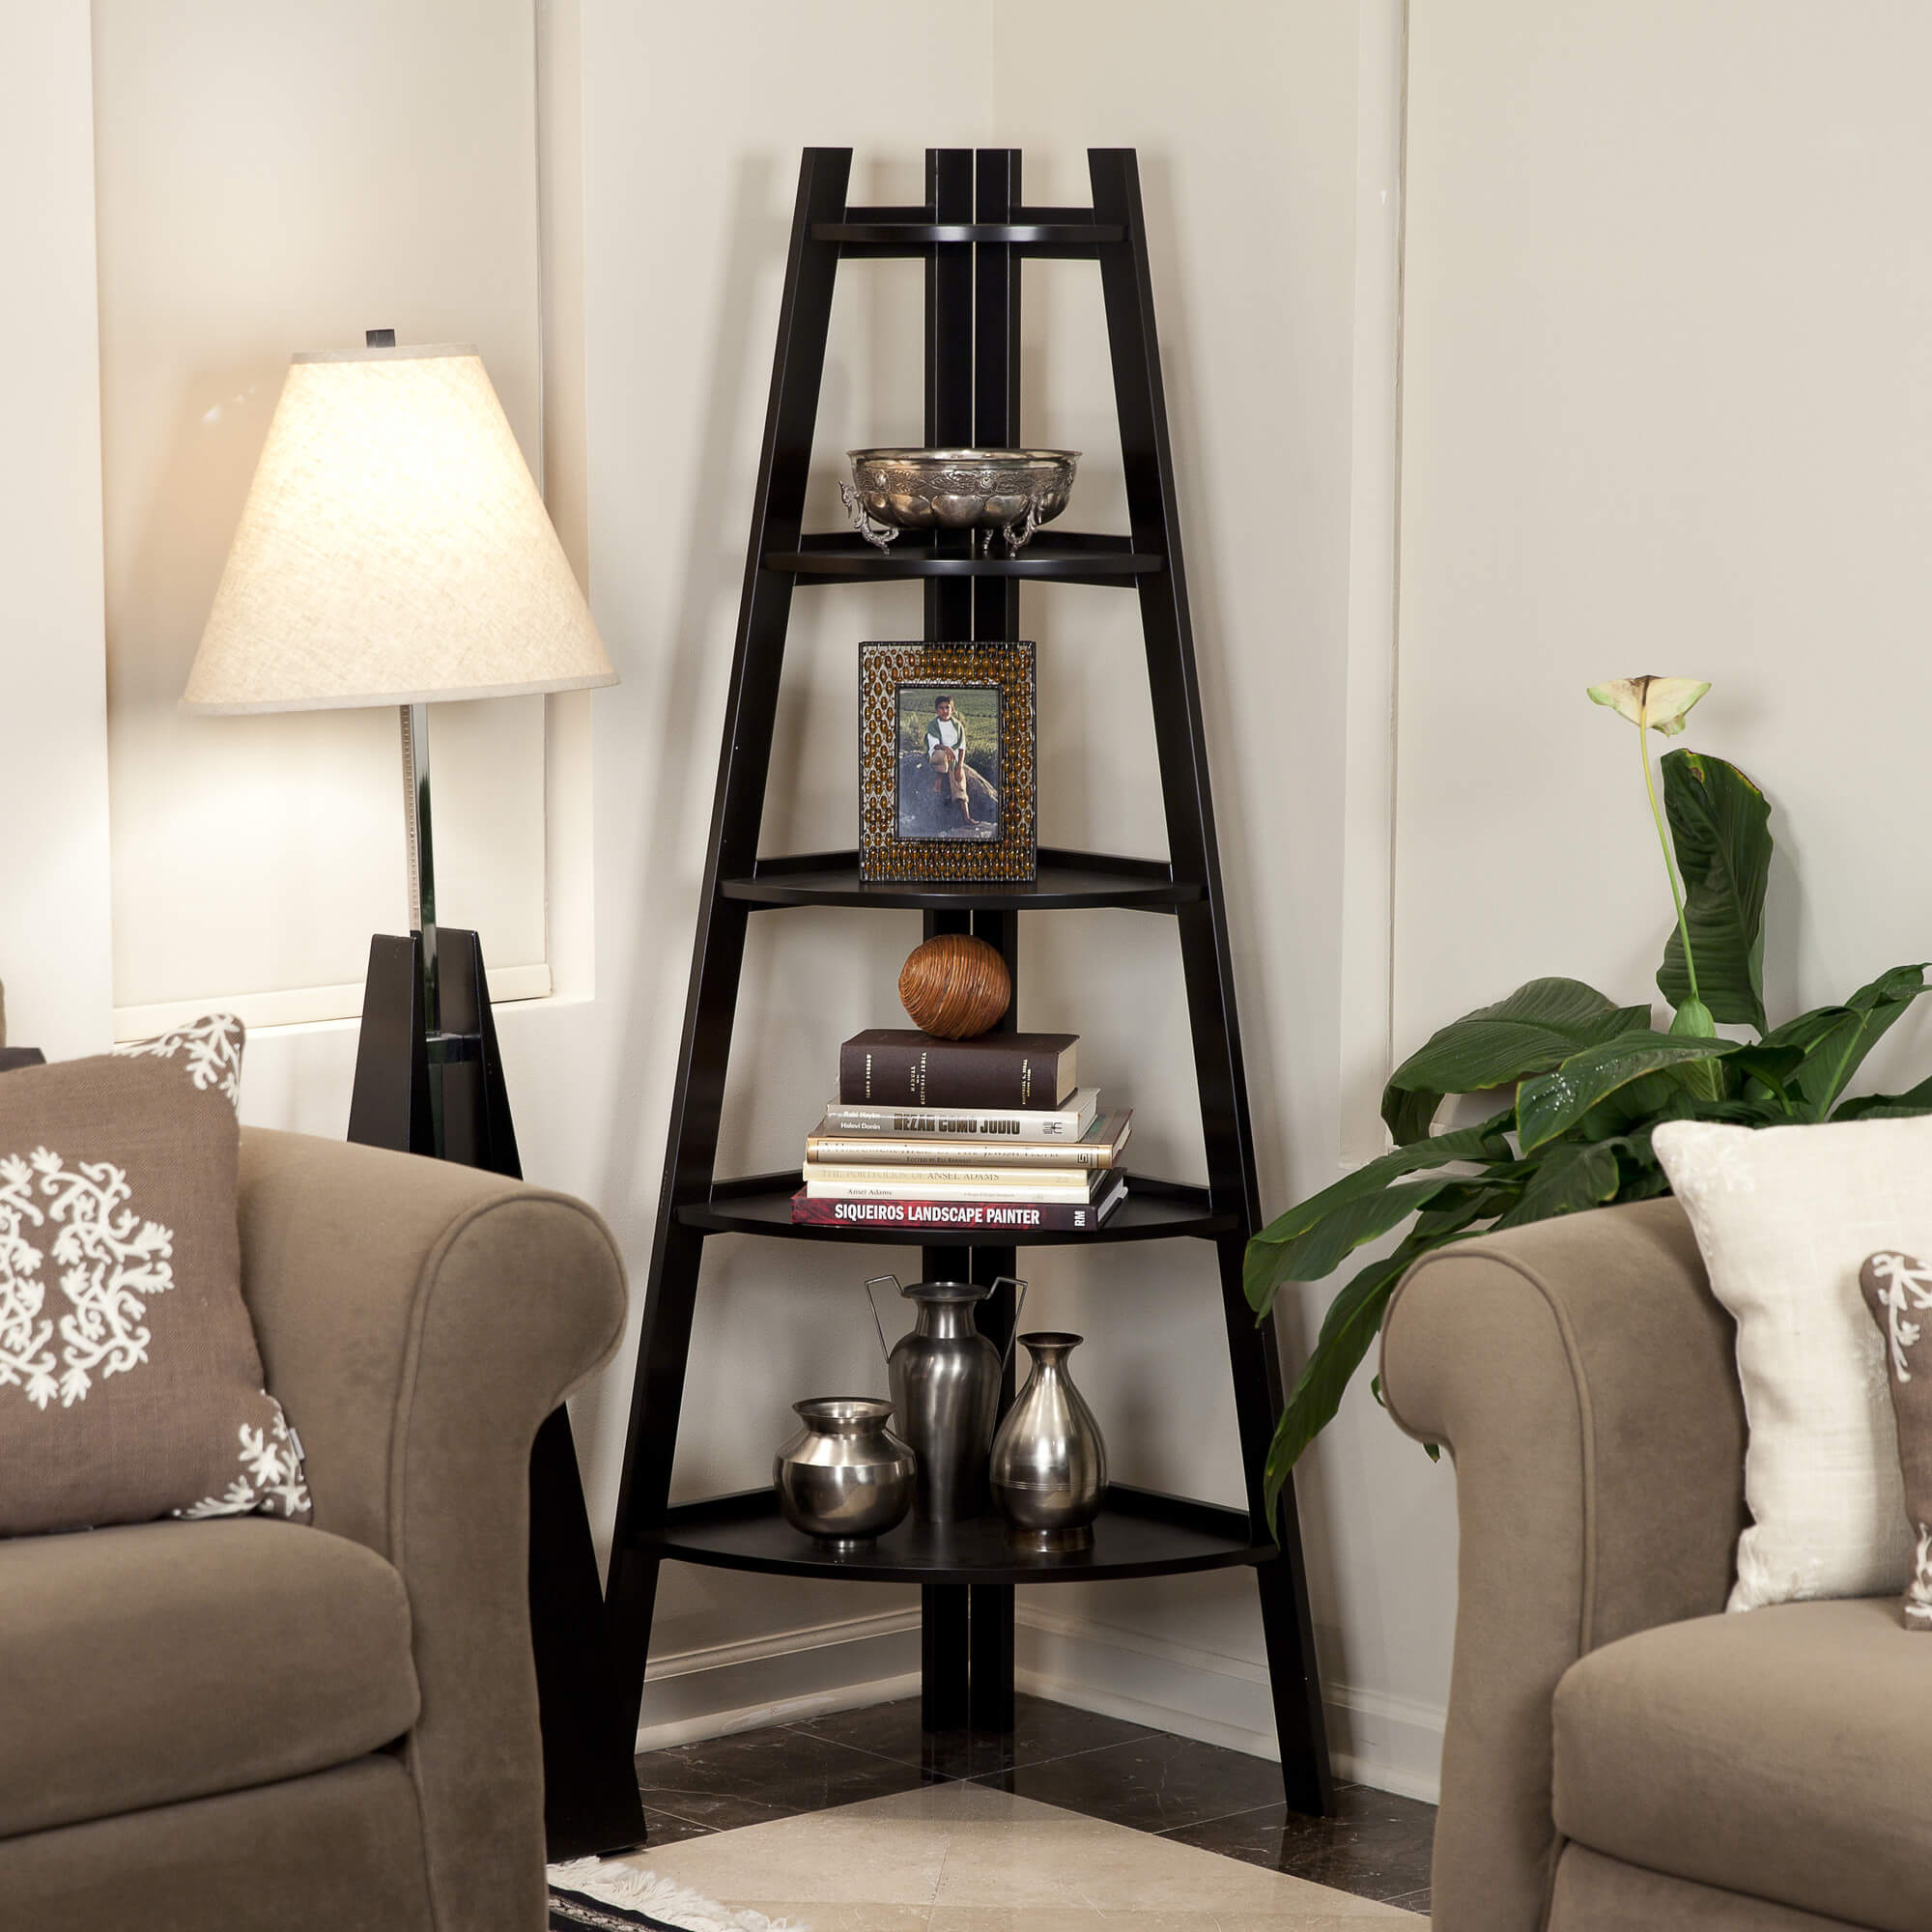 The corner design bookcase is meant, of course, to stand in corners. with two full sides facing outward, the options for shelf placement are expanded. These are especially perfect for conserving space, or displaying art or delicate pieces in a place where they will not be disturbed.